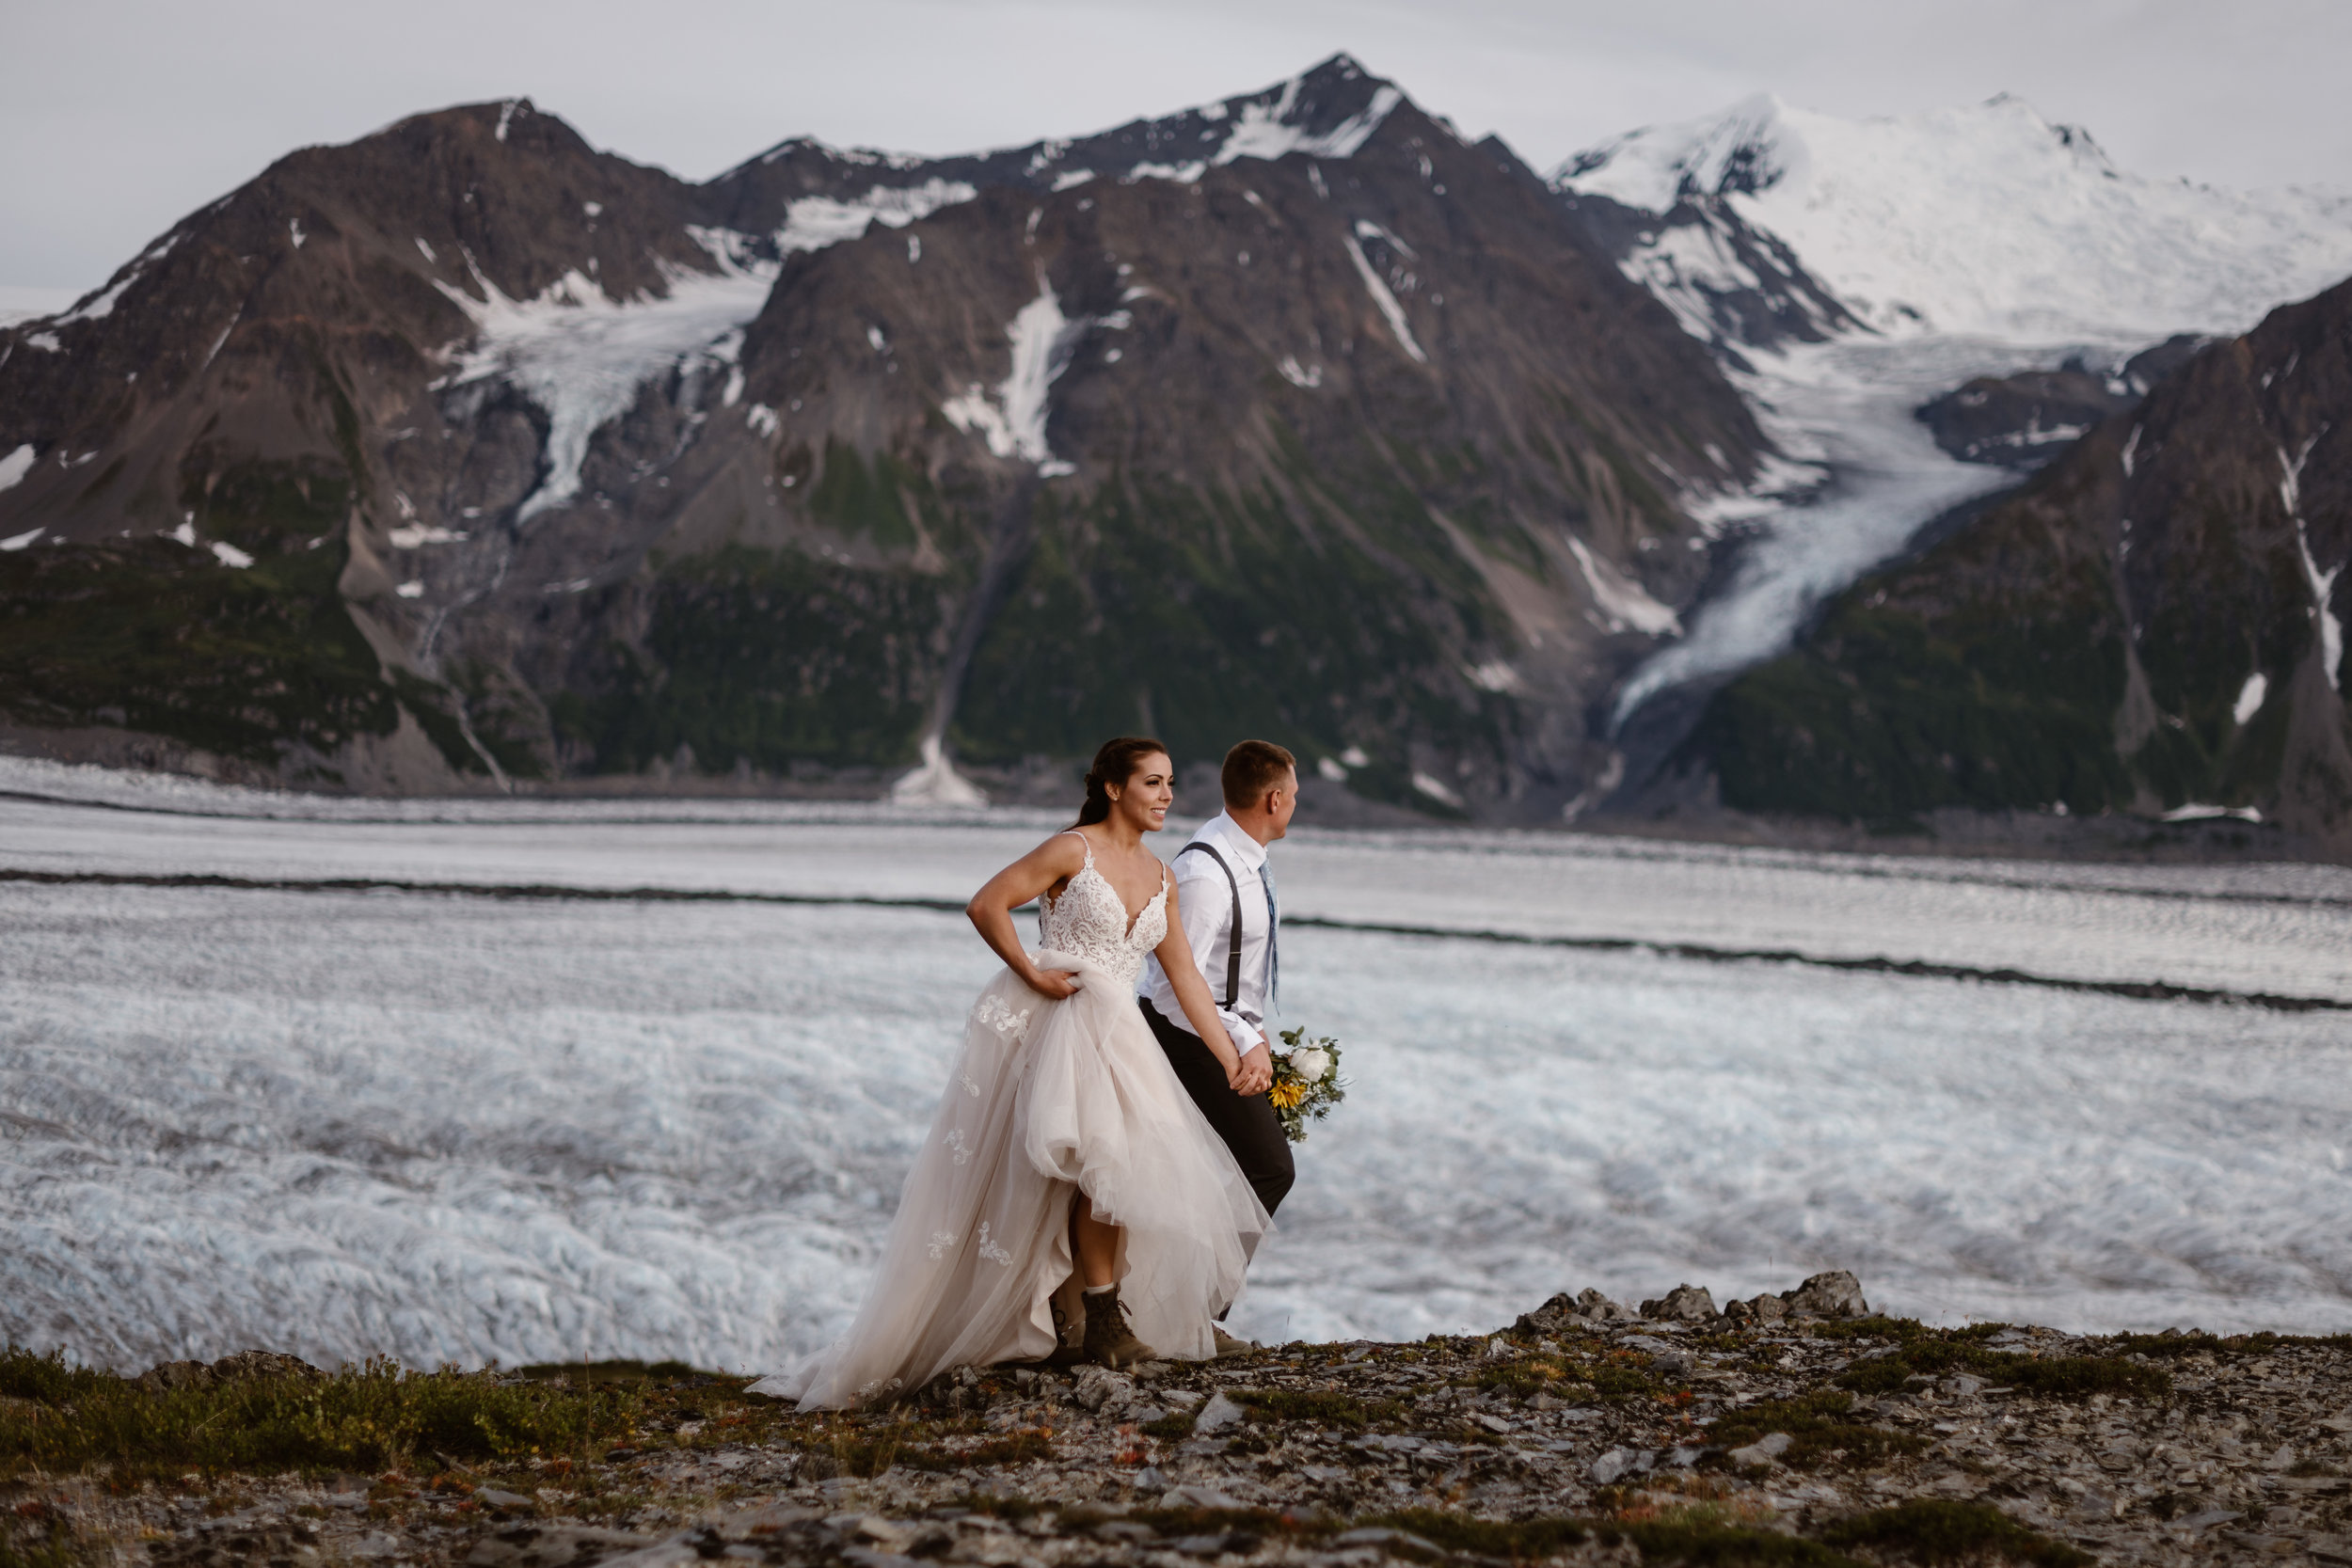 Holding hands, Jordyn and Connor walk along the side of mountain with a glacial lake and mountain peaks standing dramatically in the background. Jordyn hikes up her dress , showing off her hiking boots, and Connor walks next to her holding a bouquet of flowers. This elopement picture was captured by Alaska wedding photographer Adventure Instead.